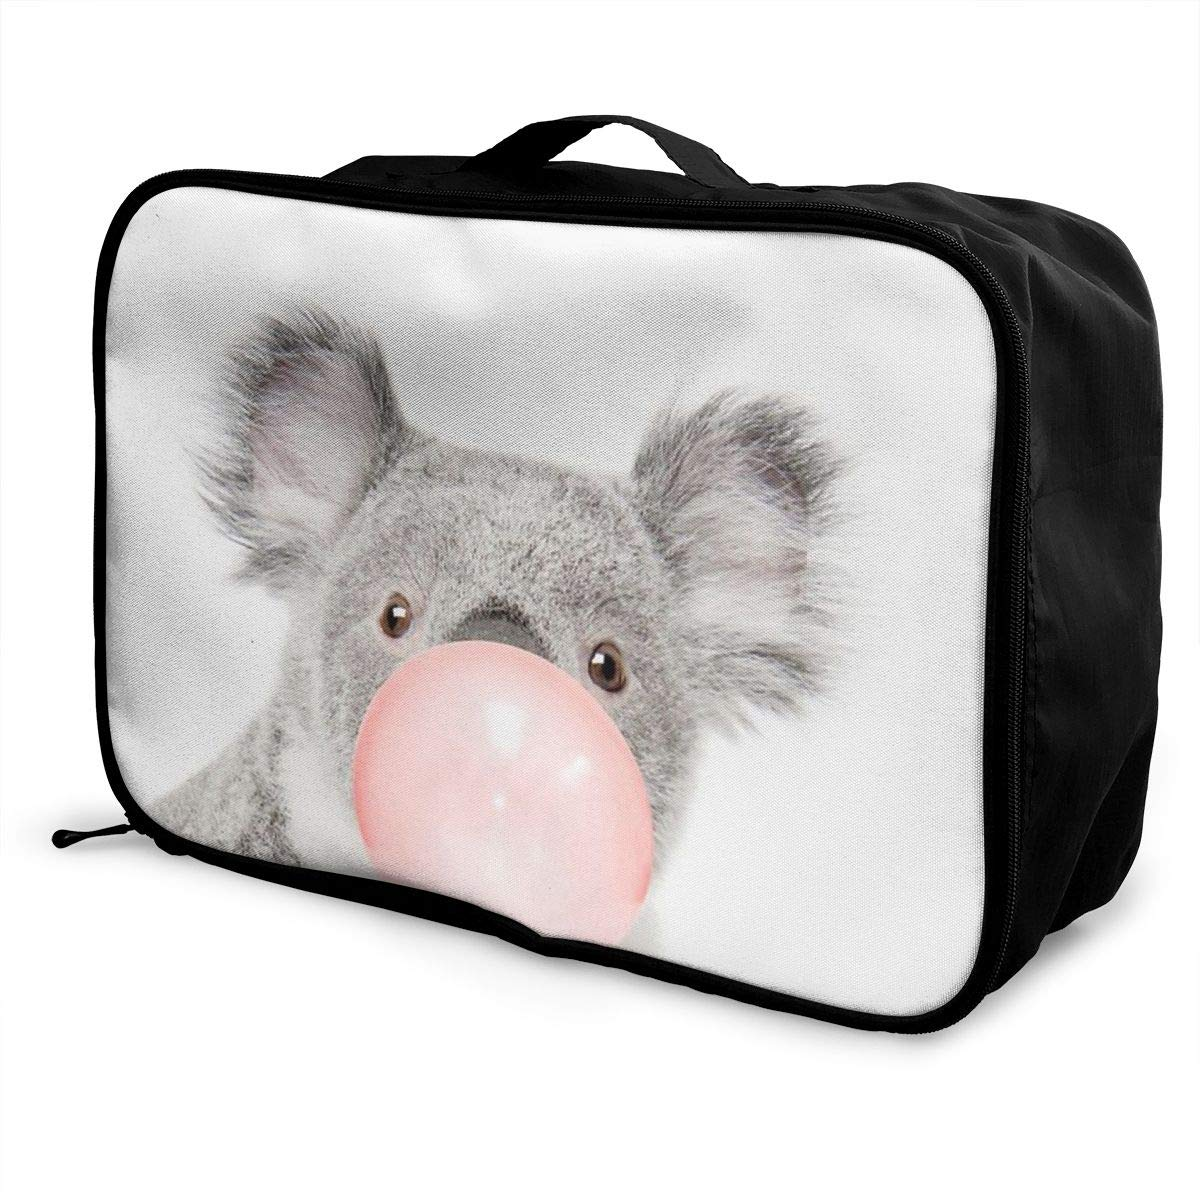 Koala With Bubble Gum Travel Lightweight Waterproof Foldable Storage Carry Luggage Duffle Tote Bag Large Capacity In Trolley Handle Bags 6x11x15 Inch